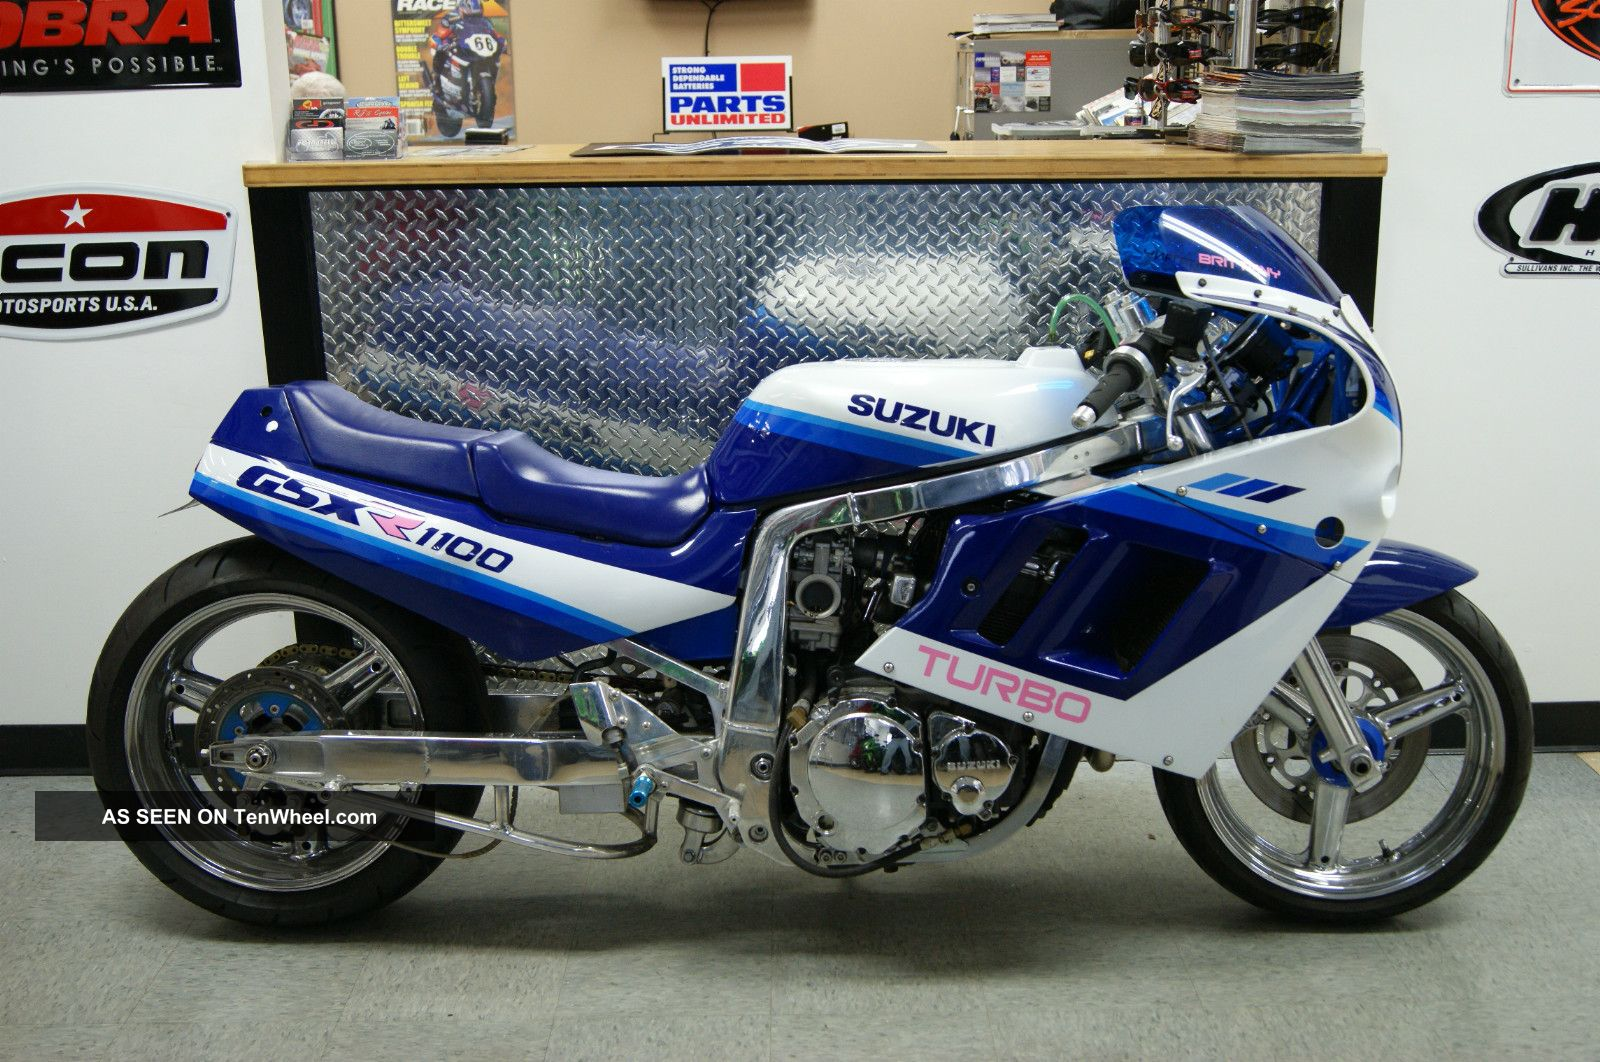 1990 suzuki gsxr 1100 turbo blue white extended 1186cc engine over 220 hp. Black Bedroom Furniture Sets. Home Design Ideas